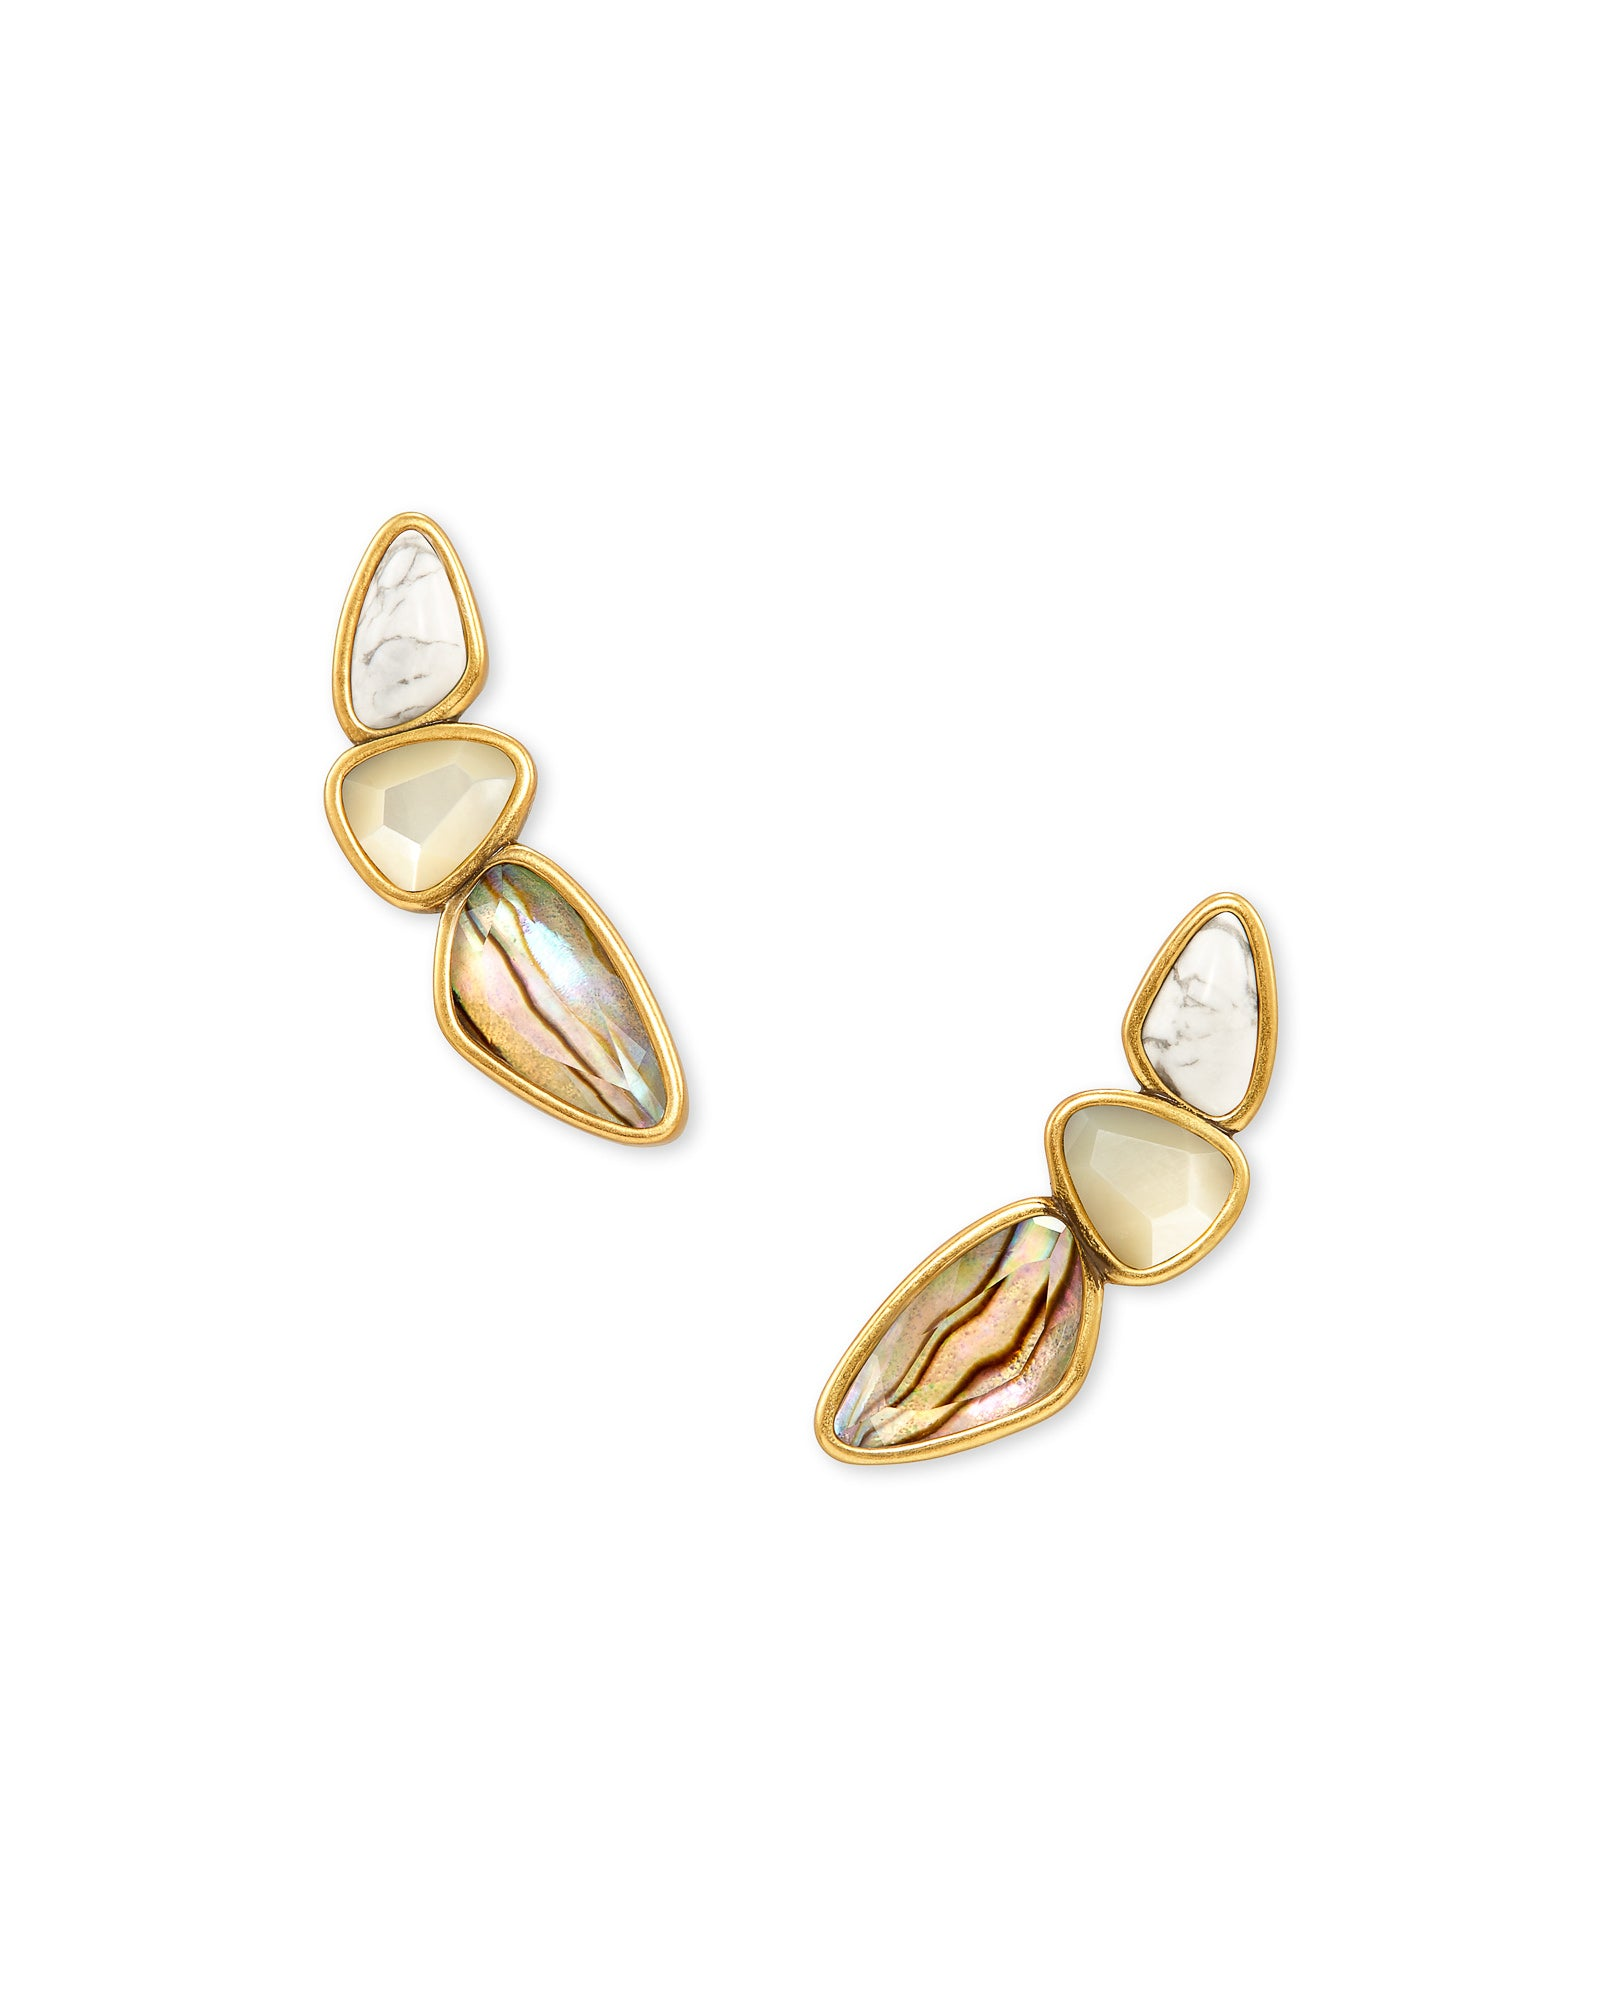 Ivy Vintage Gold Ear Climber in White Mix